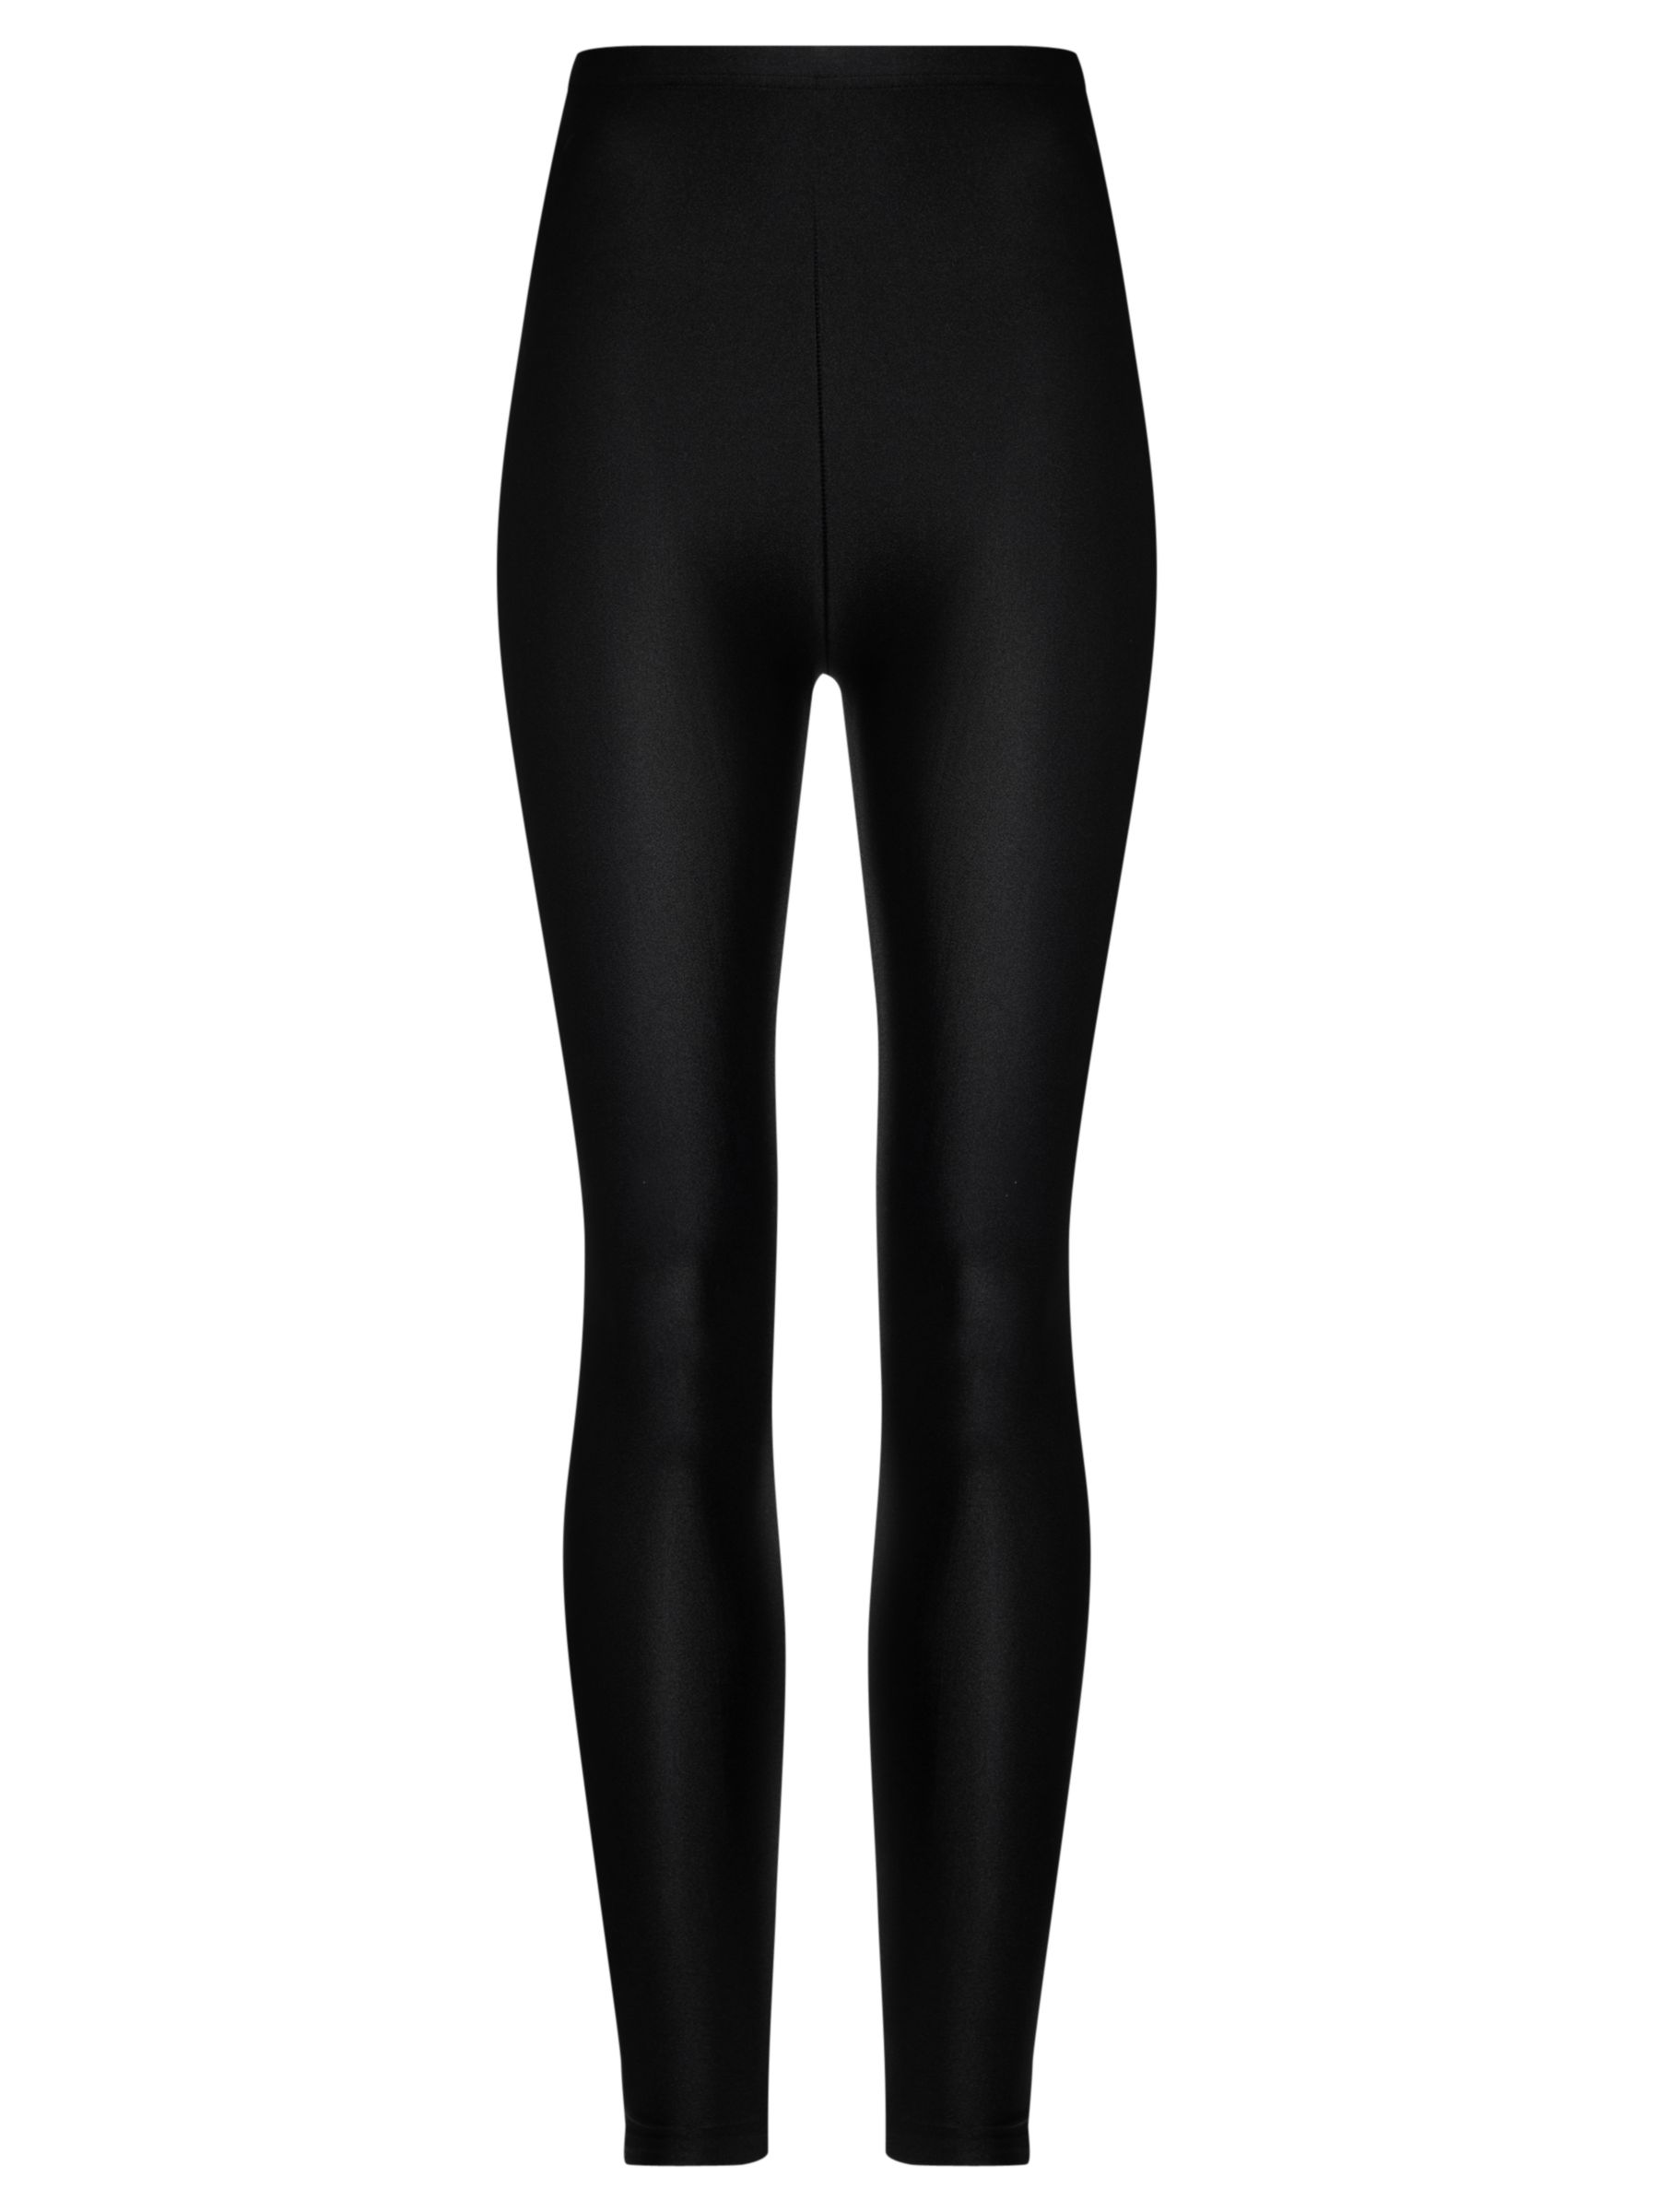 Tappers and Pointers Tappers and Pointers Footless Tights, Black